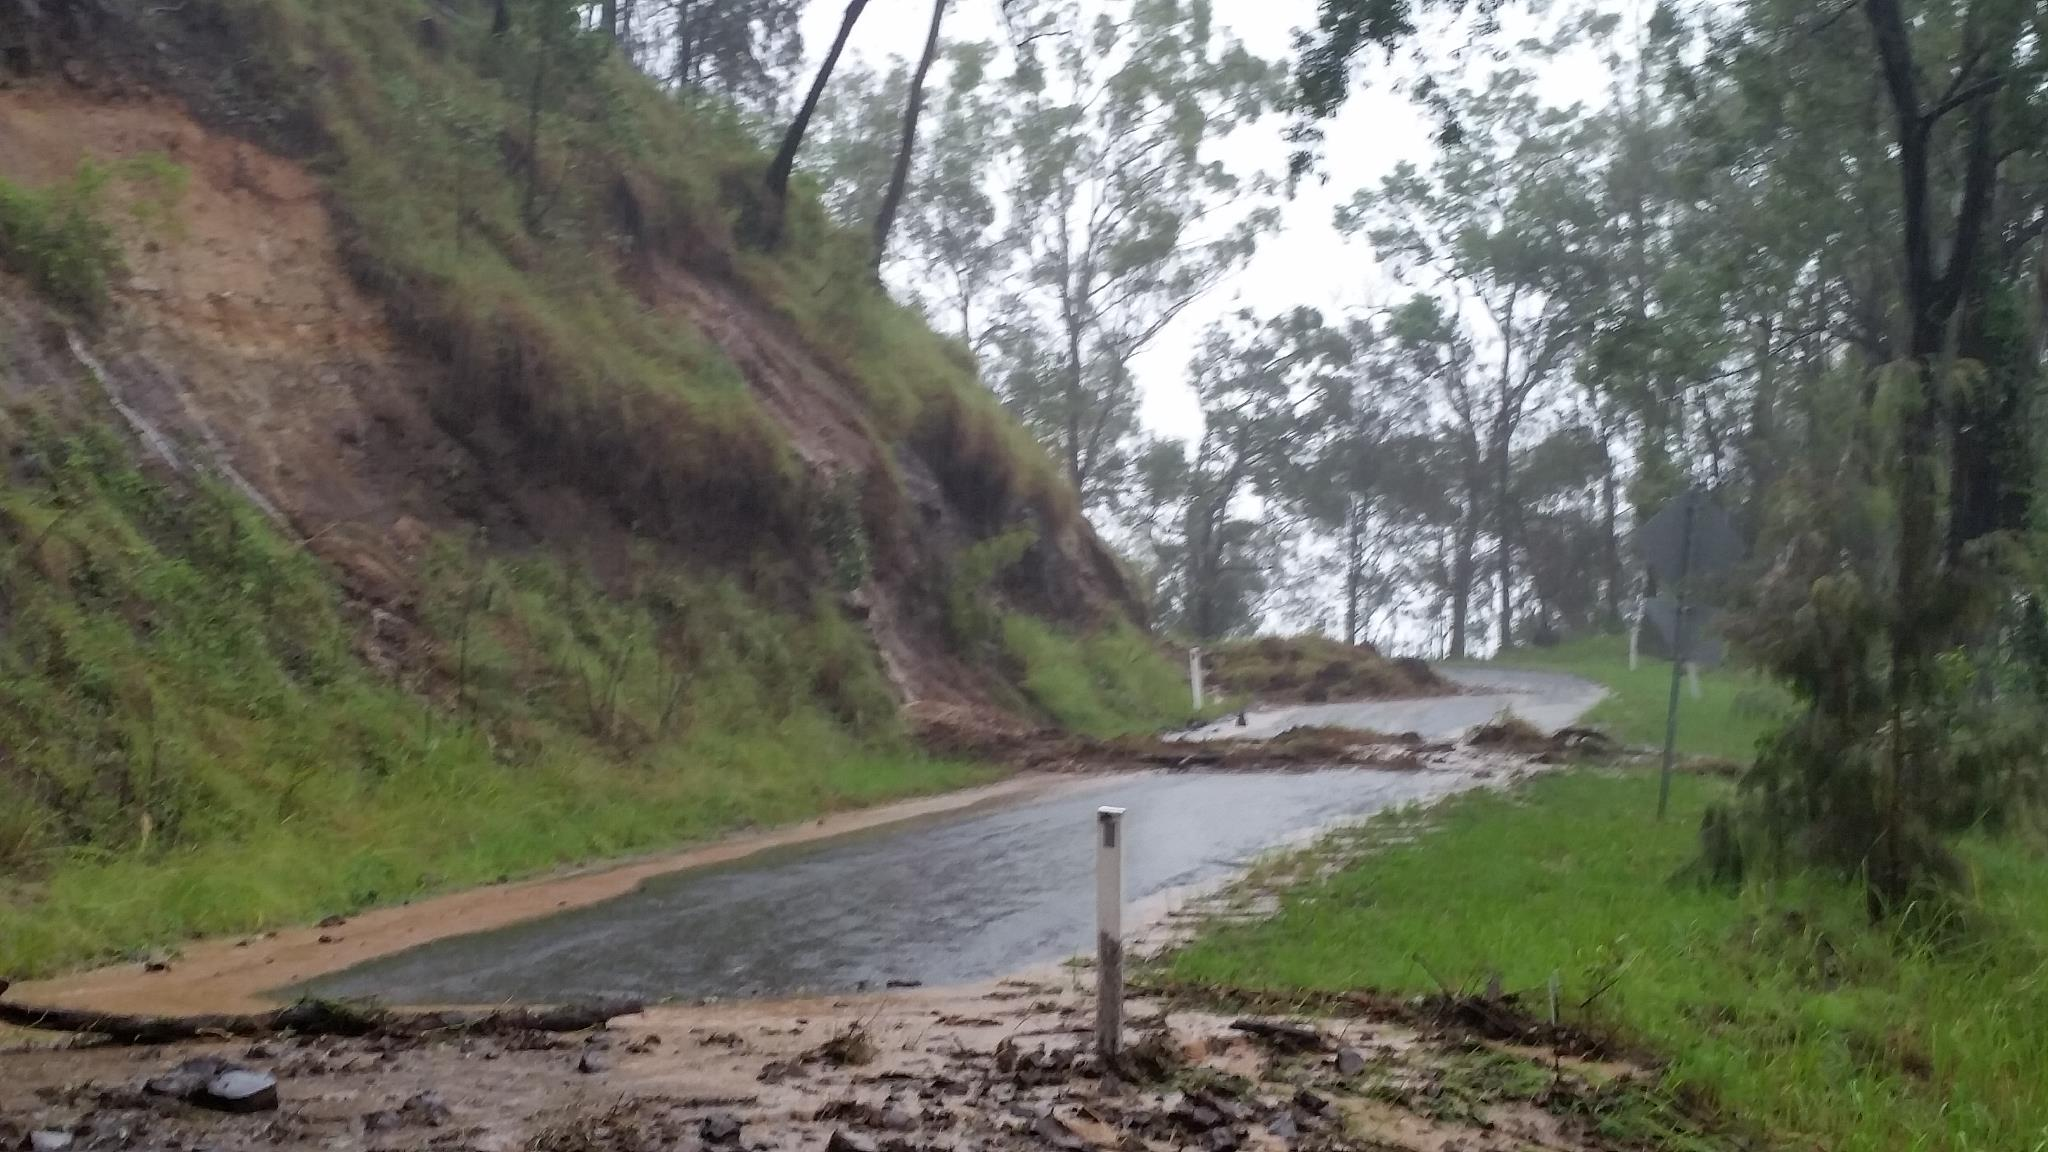 Landslides and Road blockages - Lamington National Park Rd - Cyclone Debbie - 30th March